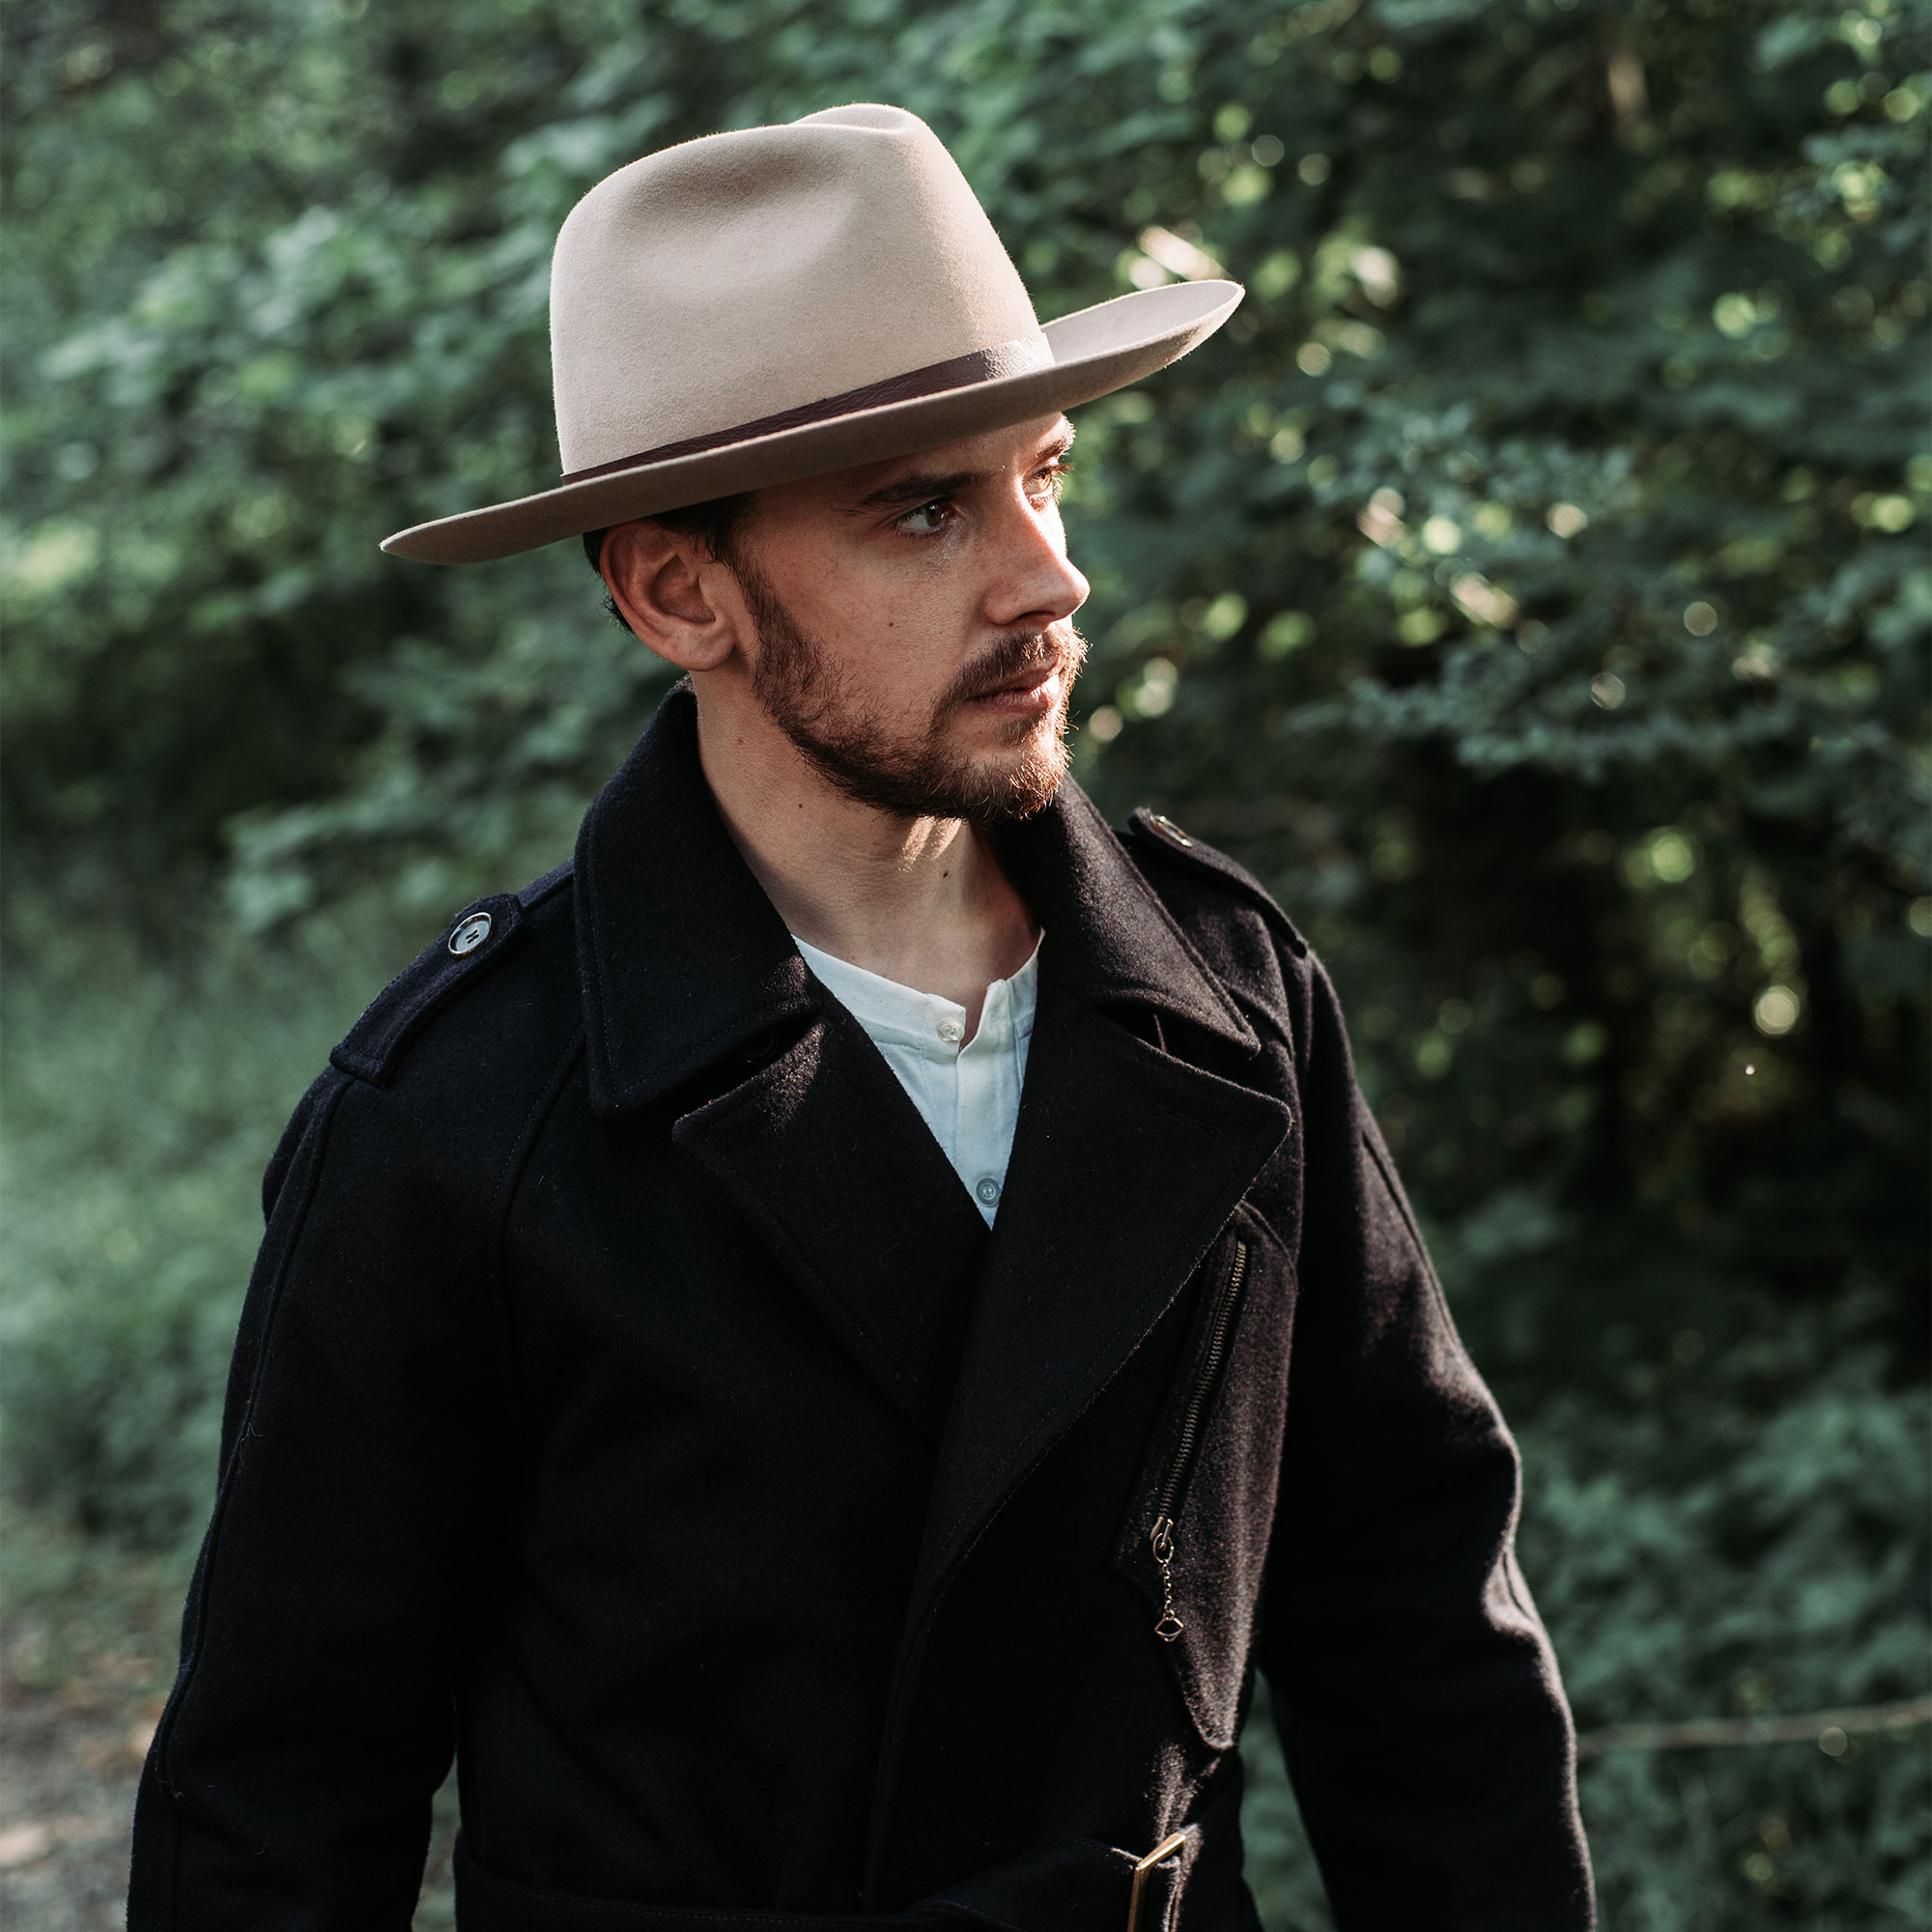 shangri-la-heritage-stelvio-navy-blue-melton-wool-dispatch-rider-coat-furia-western-hat-lifestyle-4